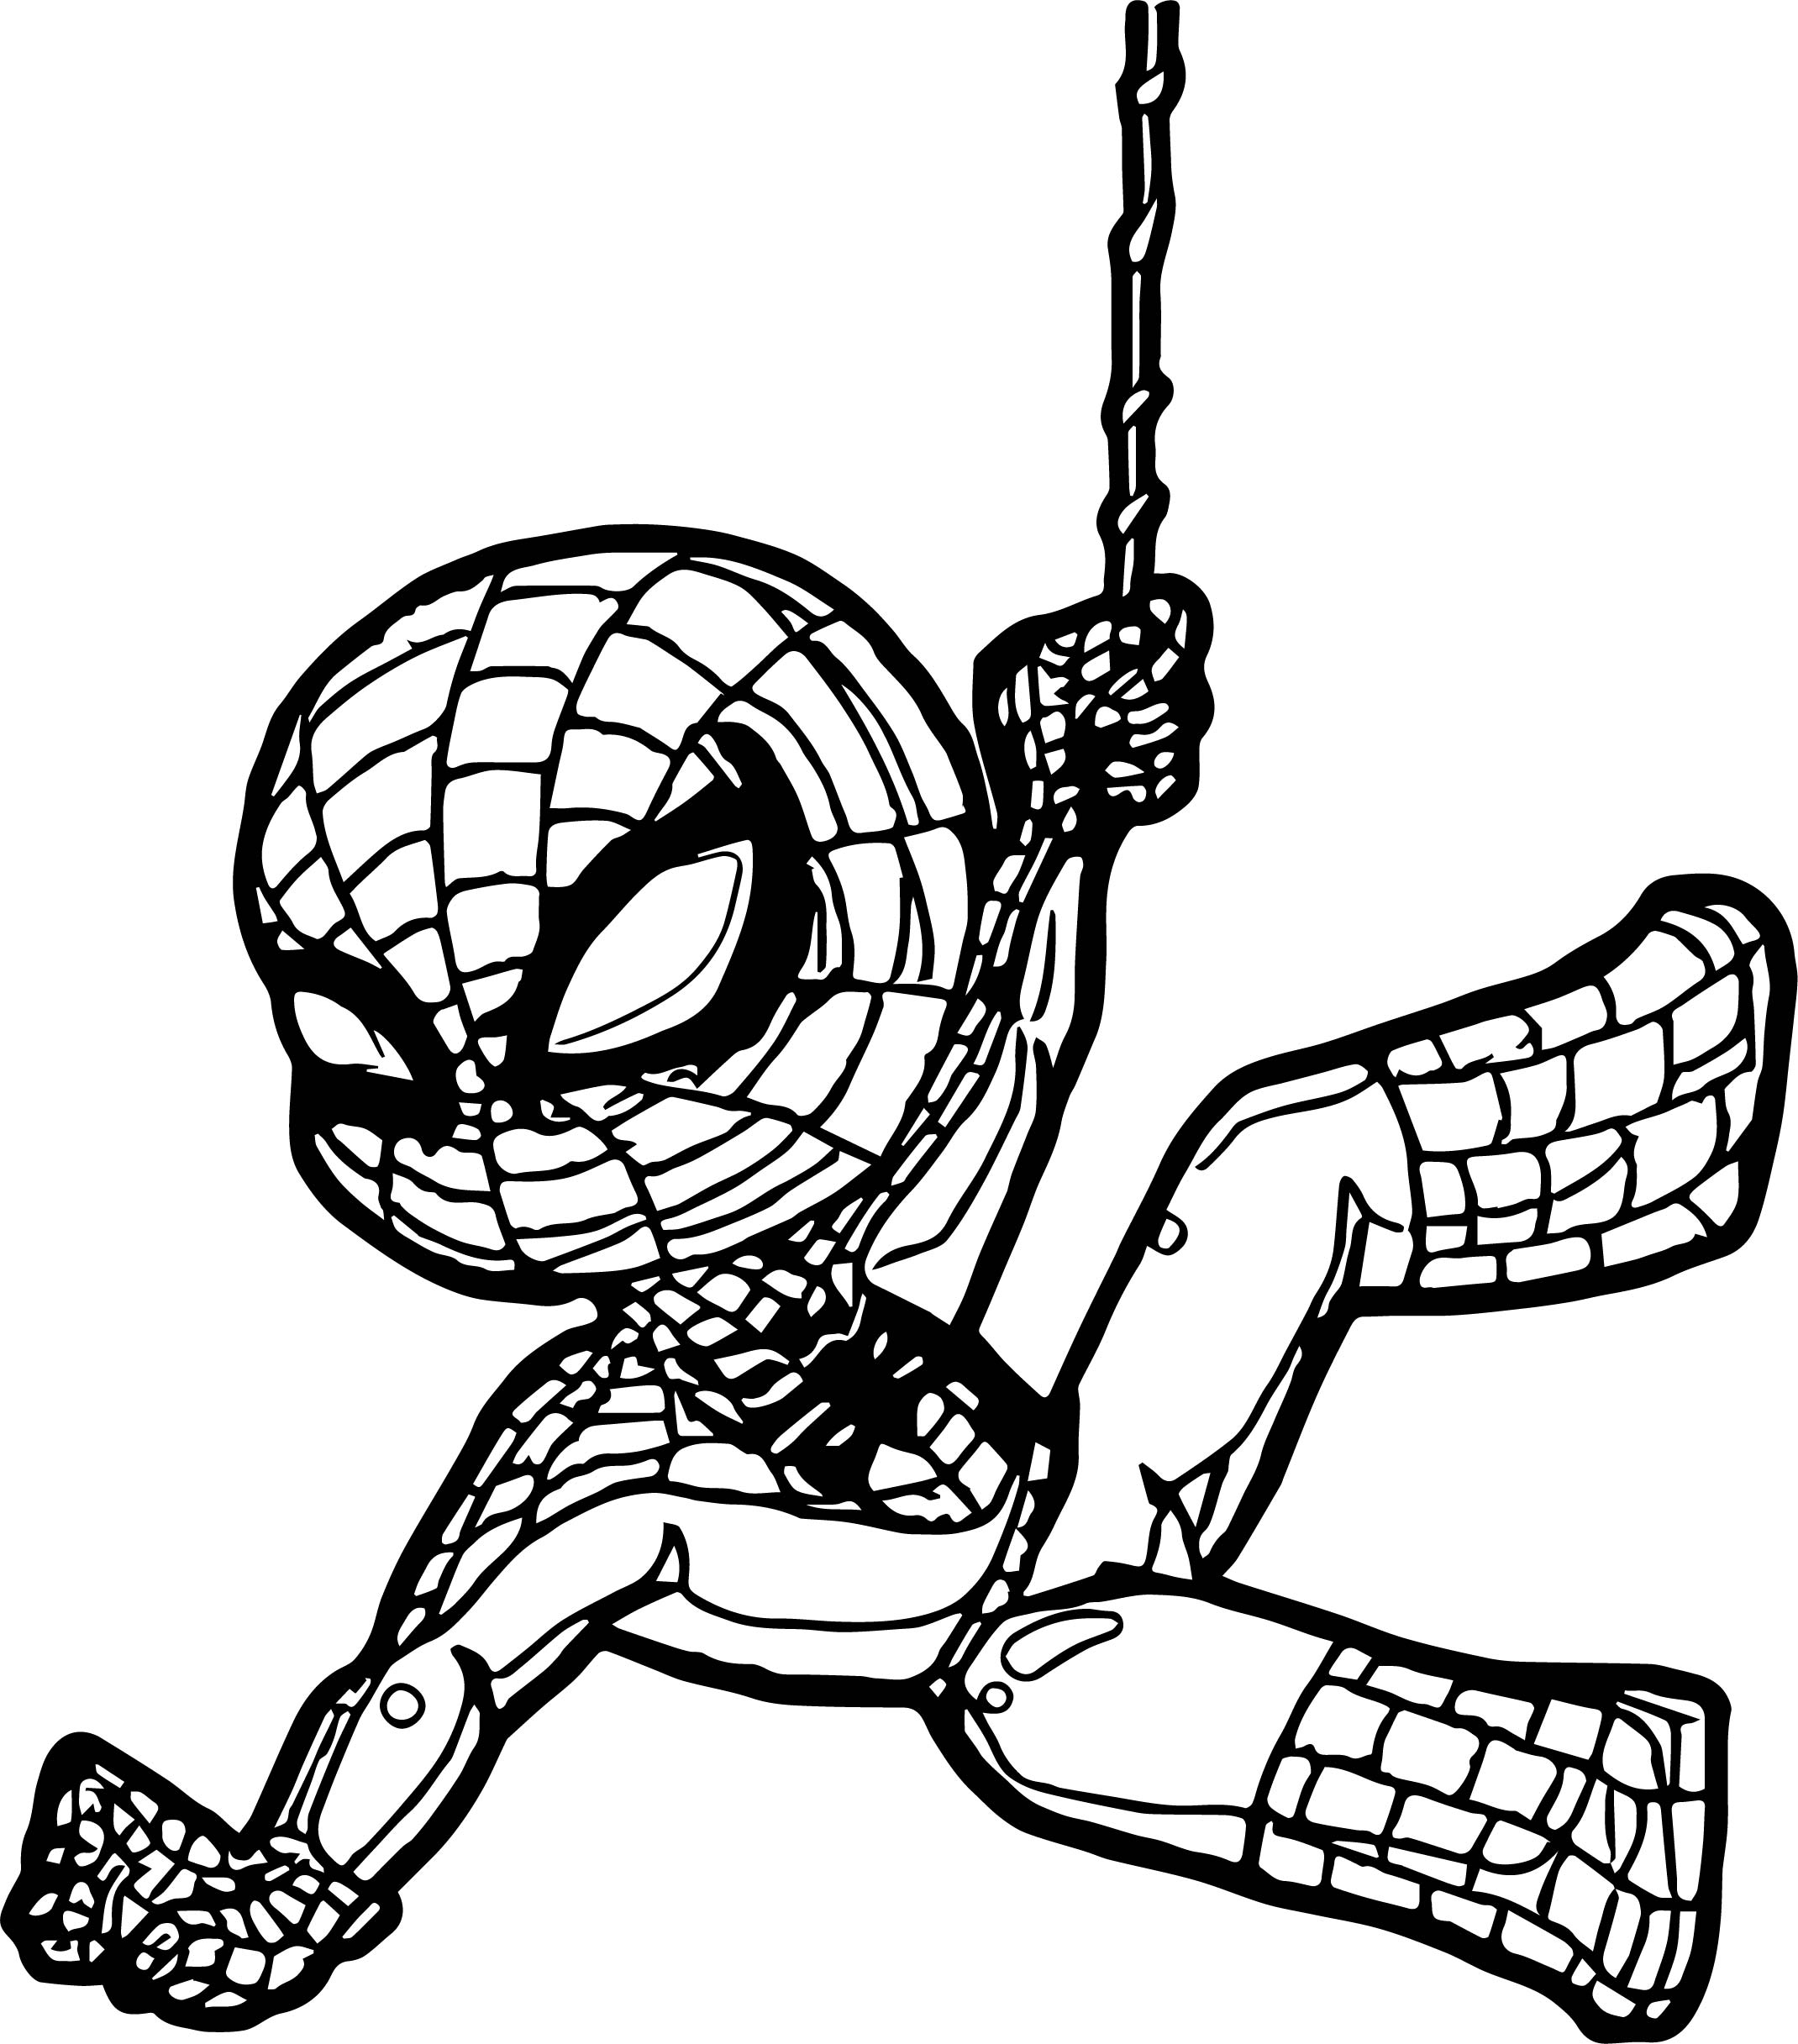 Child spider man coloring page for Spiderman coloring book pages